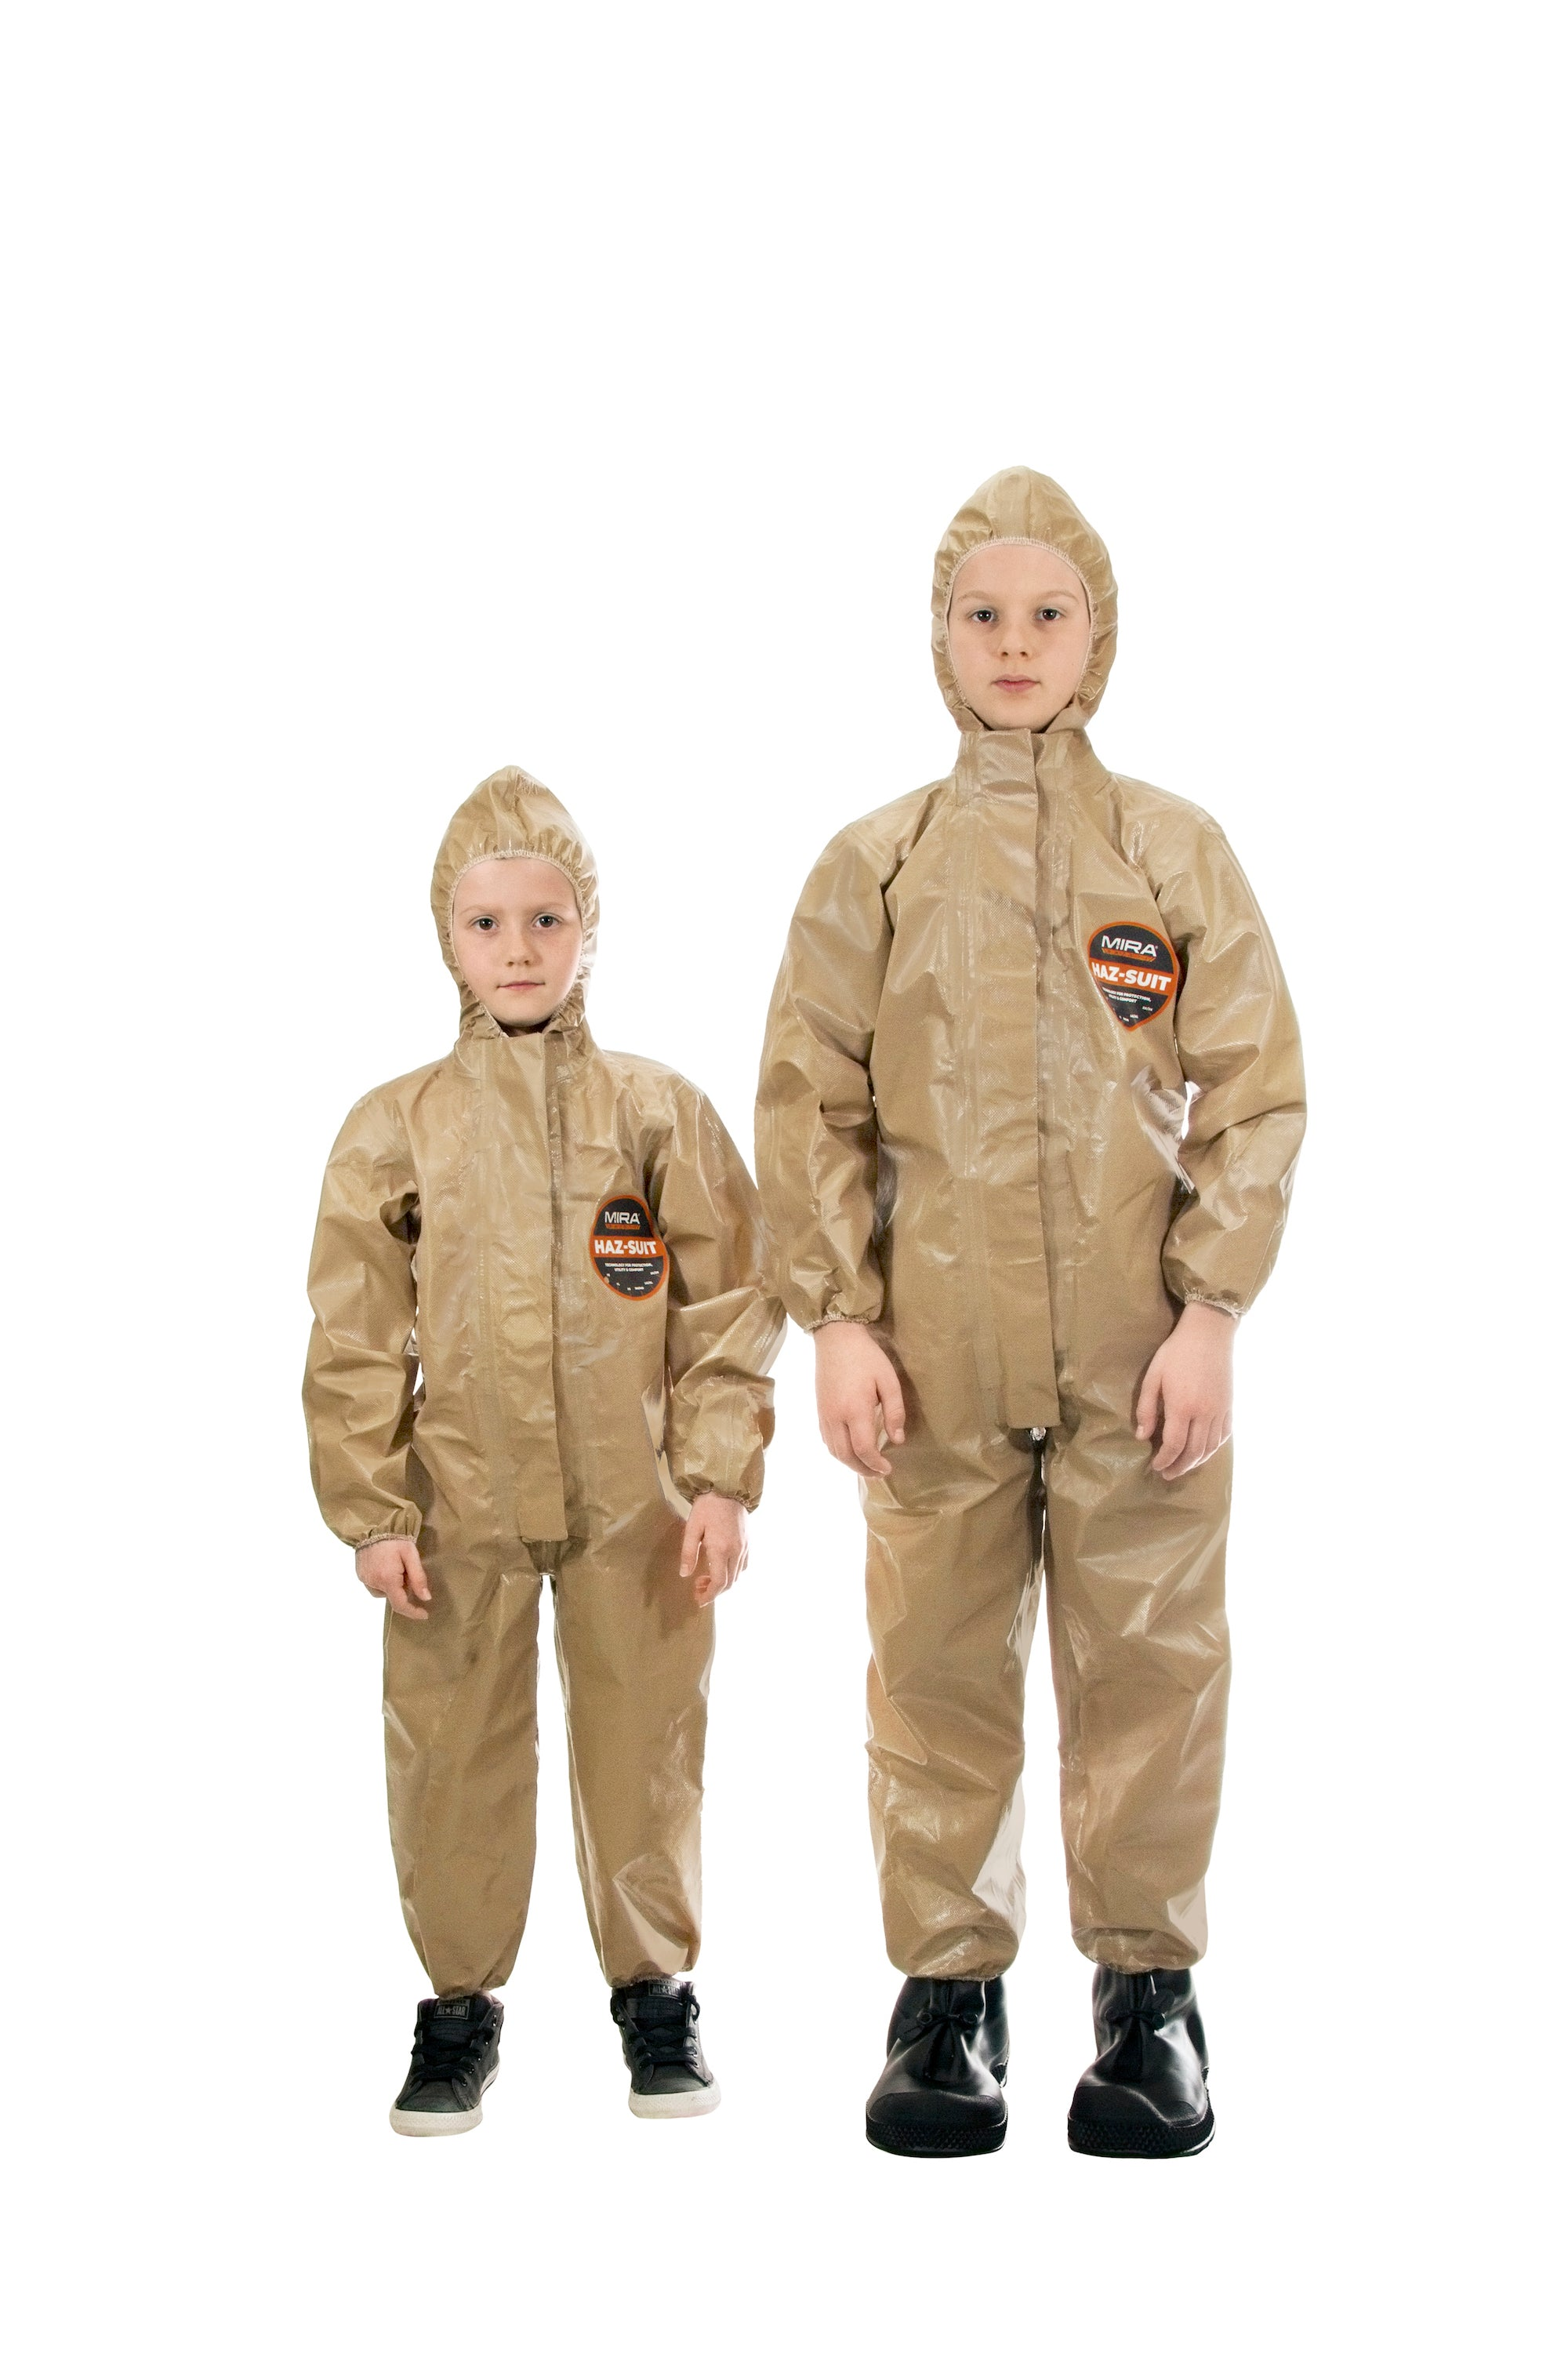 Two children wearing the HAZ-SUIT HAZMAT Suit